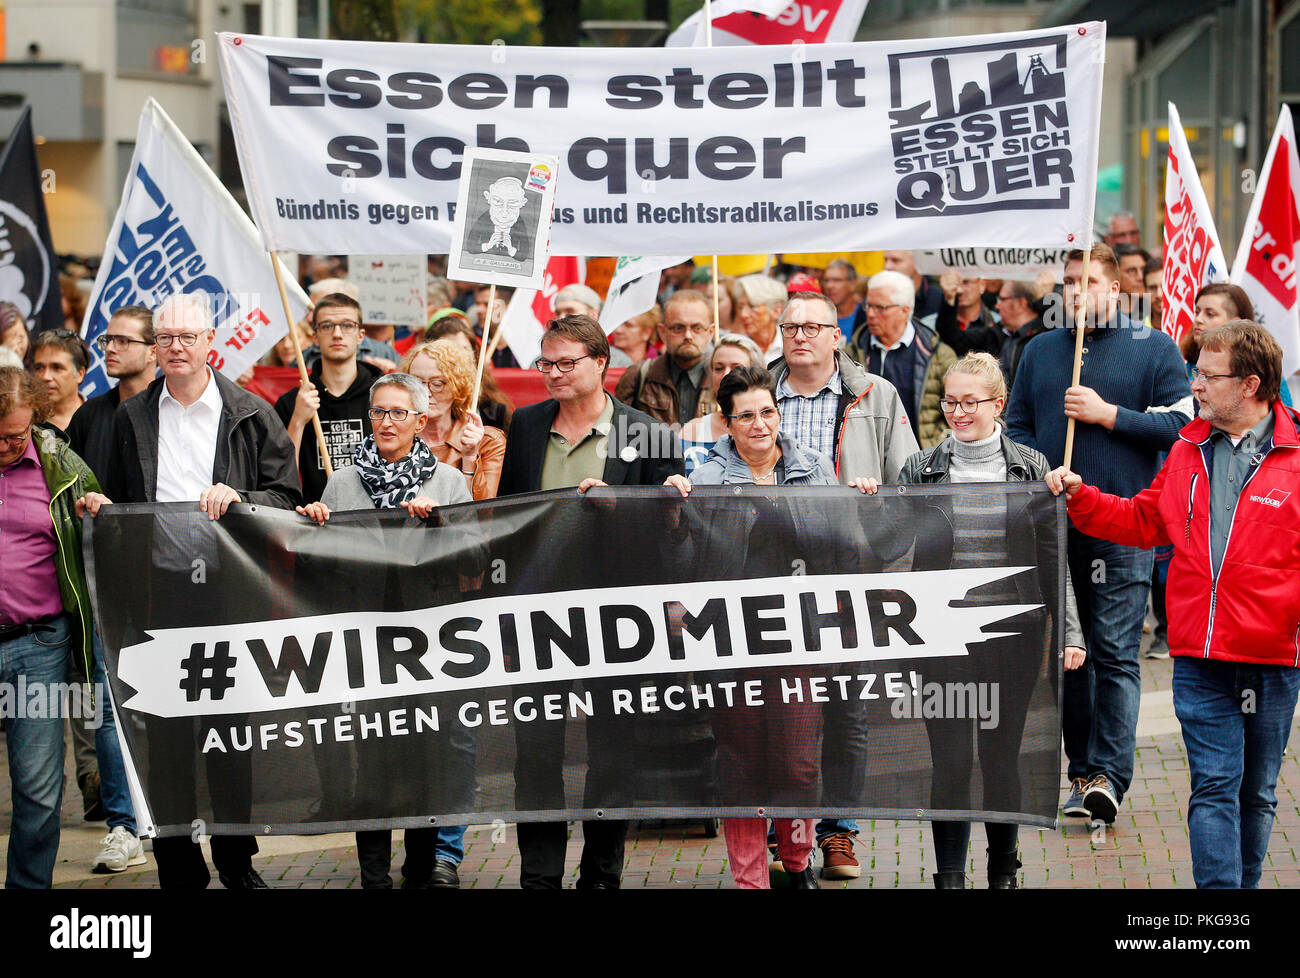 """13 September 2018, North Rhine-Westphalia, Essen: 13 September 2018, Germany, Essen: Demonstrators protest under the motto """"#WIRSINDMEHR - Standing up against right-wing agitation"""". The left-wing alliance has called for participation """"Essen resists"""". The reason is the xenophobic marches in Chemnitz. Photo: Roland Weihrauch/dpa Stock Photo"""